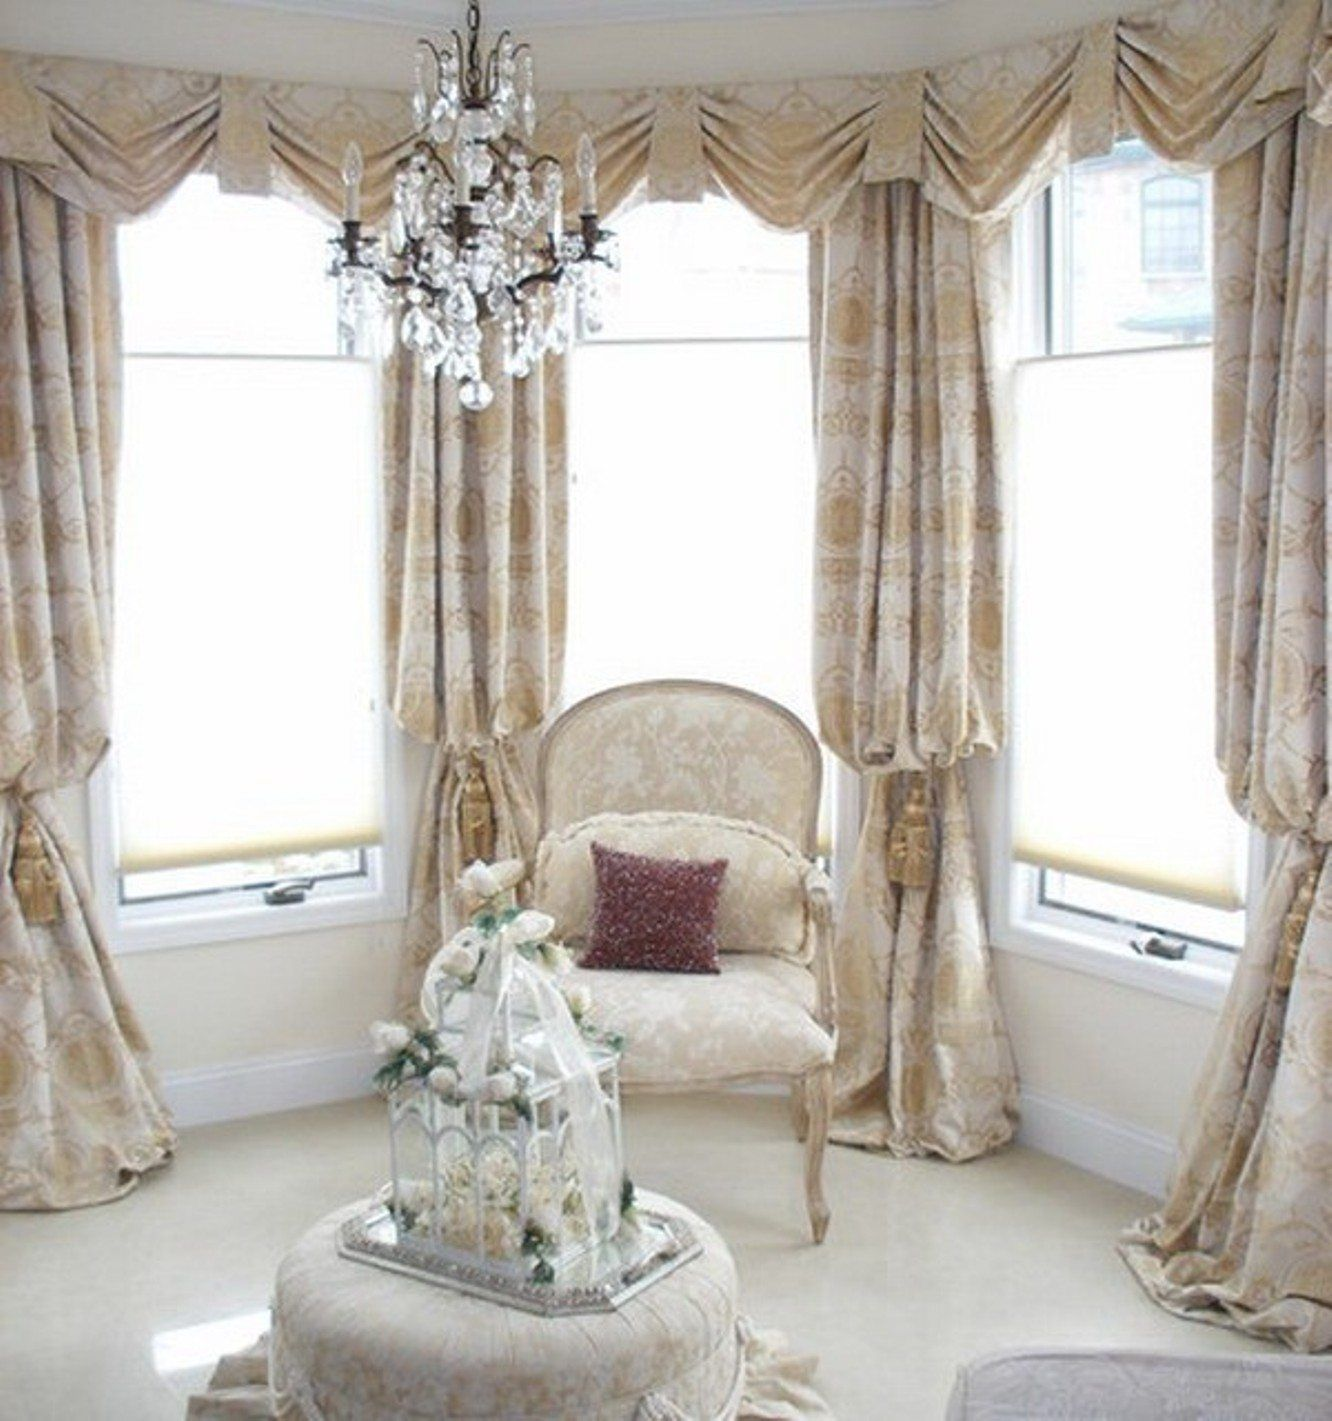 Awesome Curtain Ideas For Bay Window Living Room Eclectic: Nice Bay Window Decorating Tips